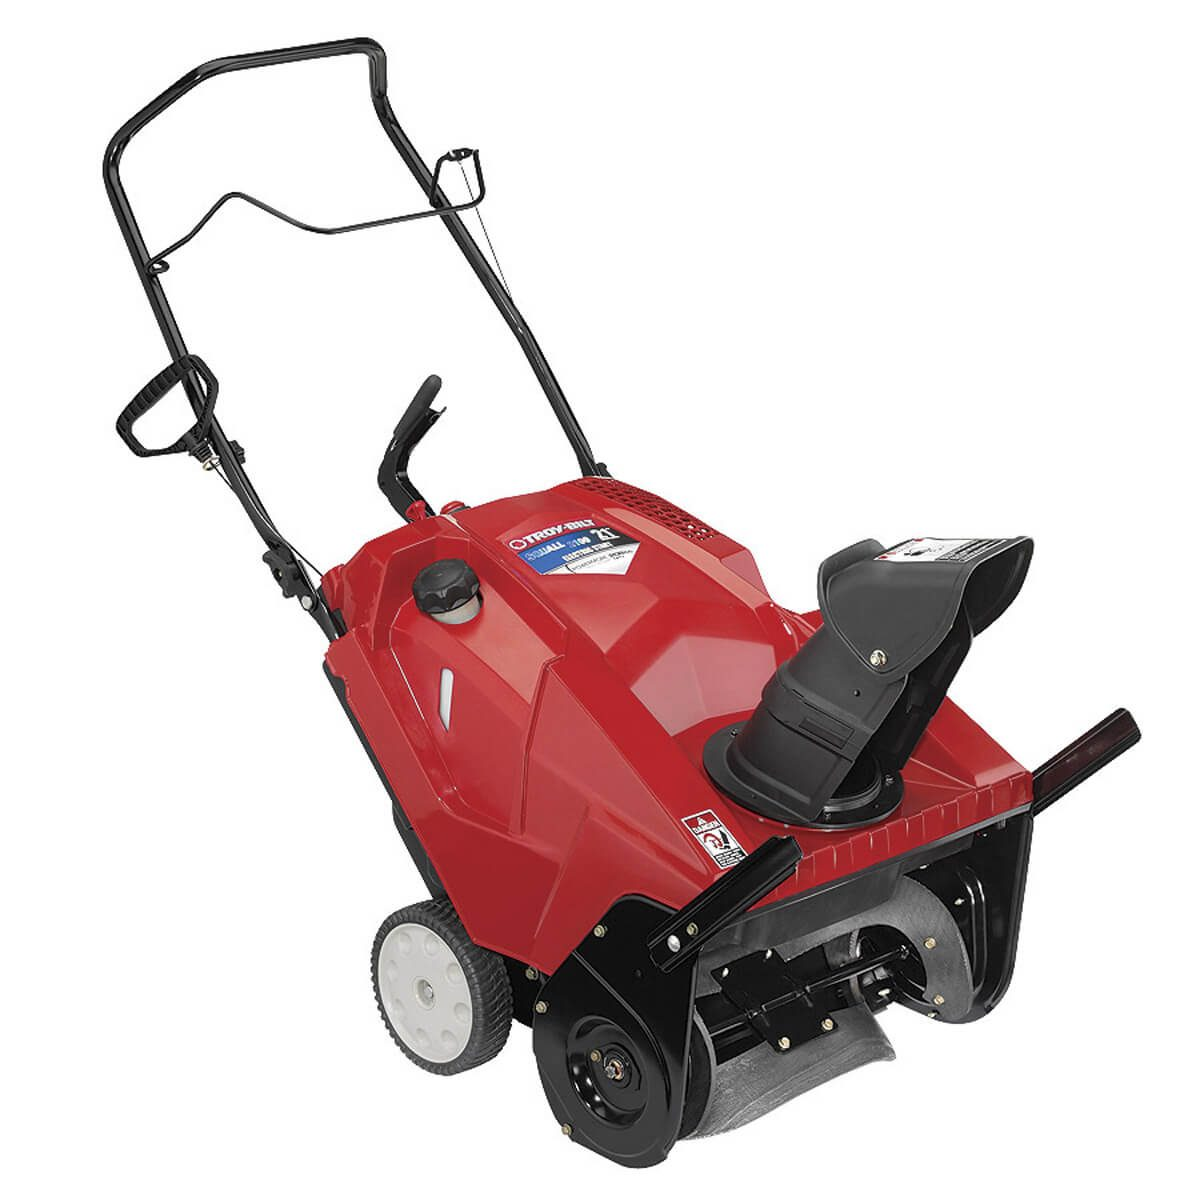 Troy-Bilt Squall 2100 Electric Start Single-Stage Snow Thrower